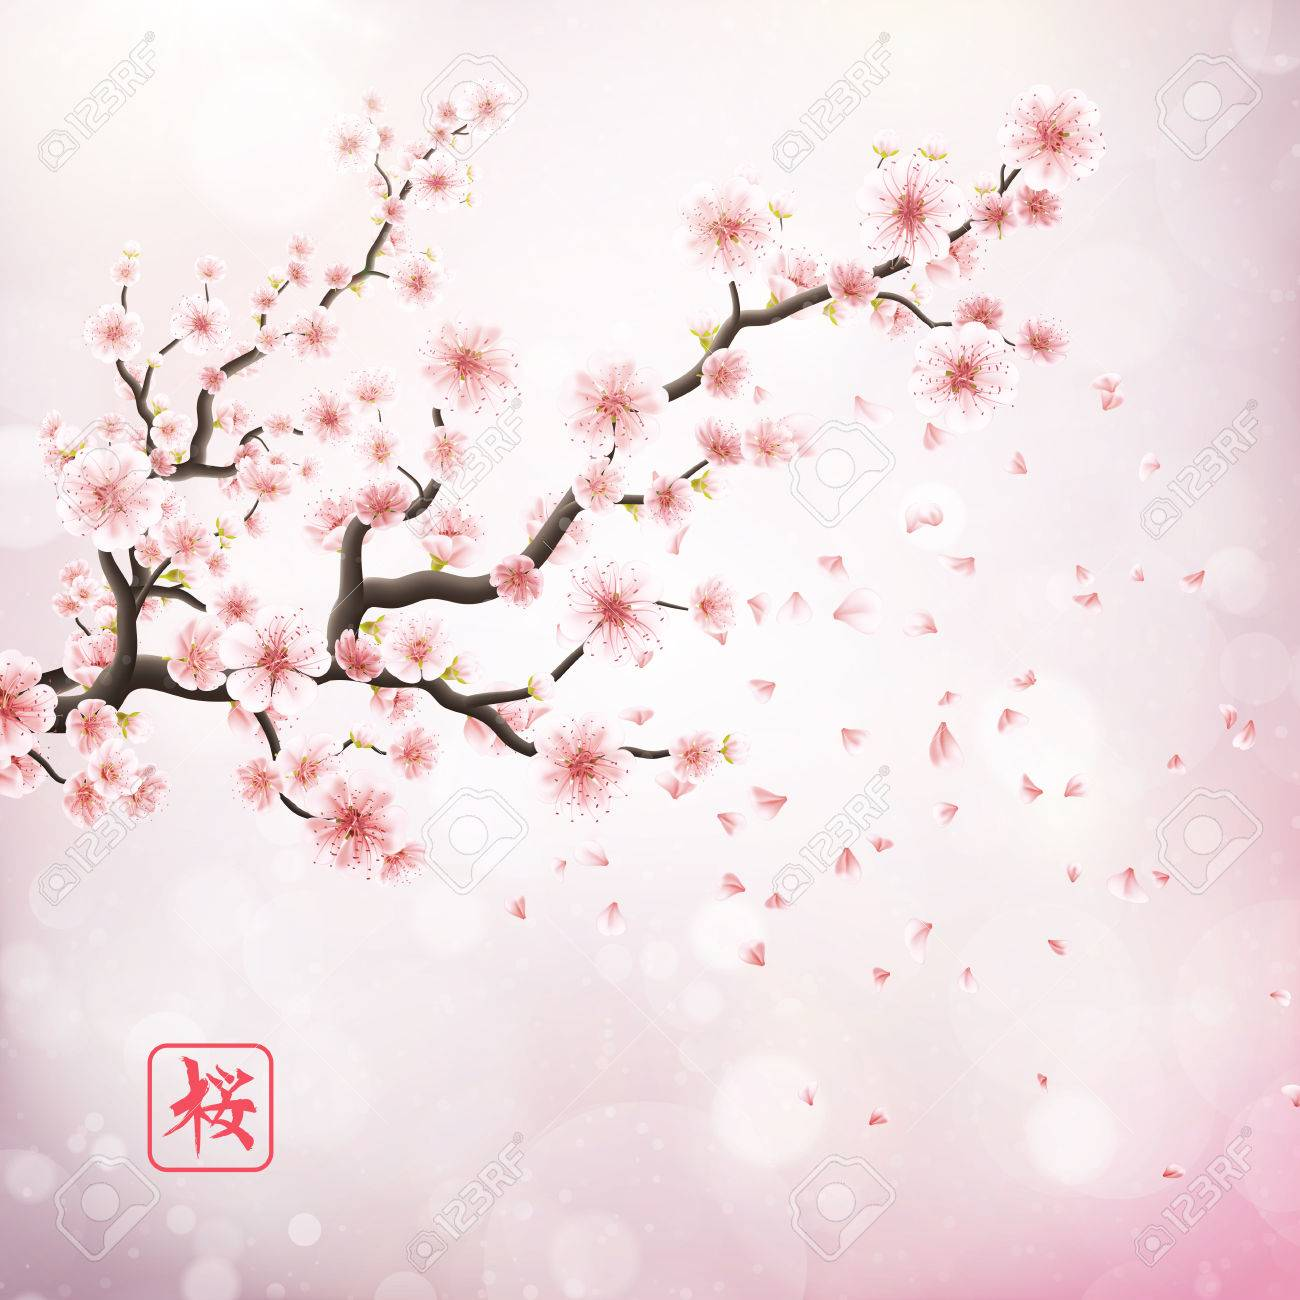 Nature Background With Blossom Branch Of Pink Sakura Flowers